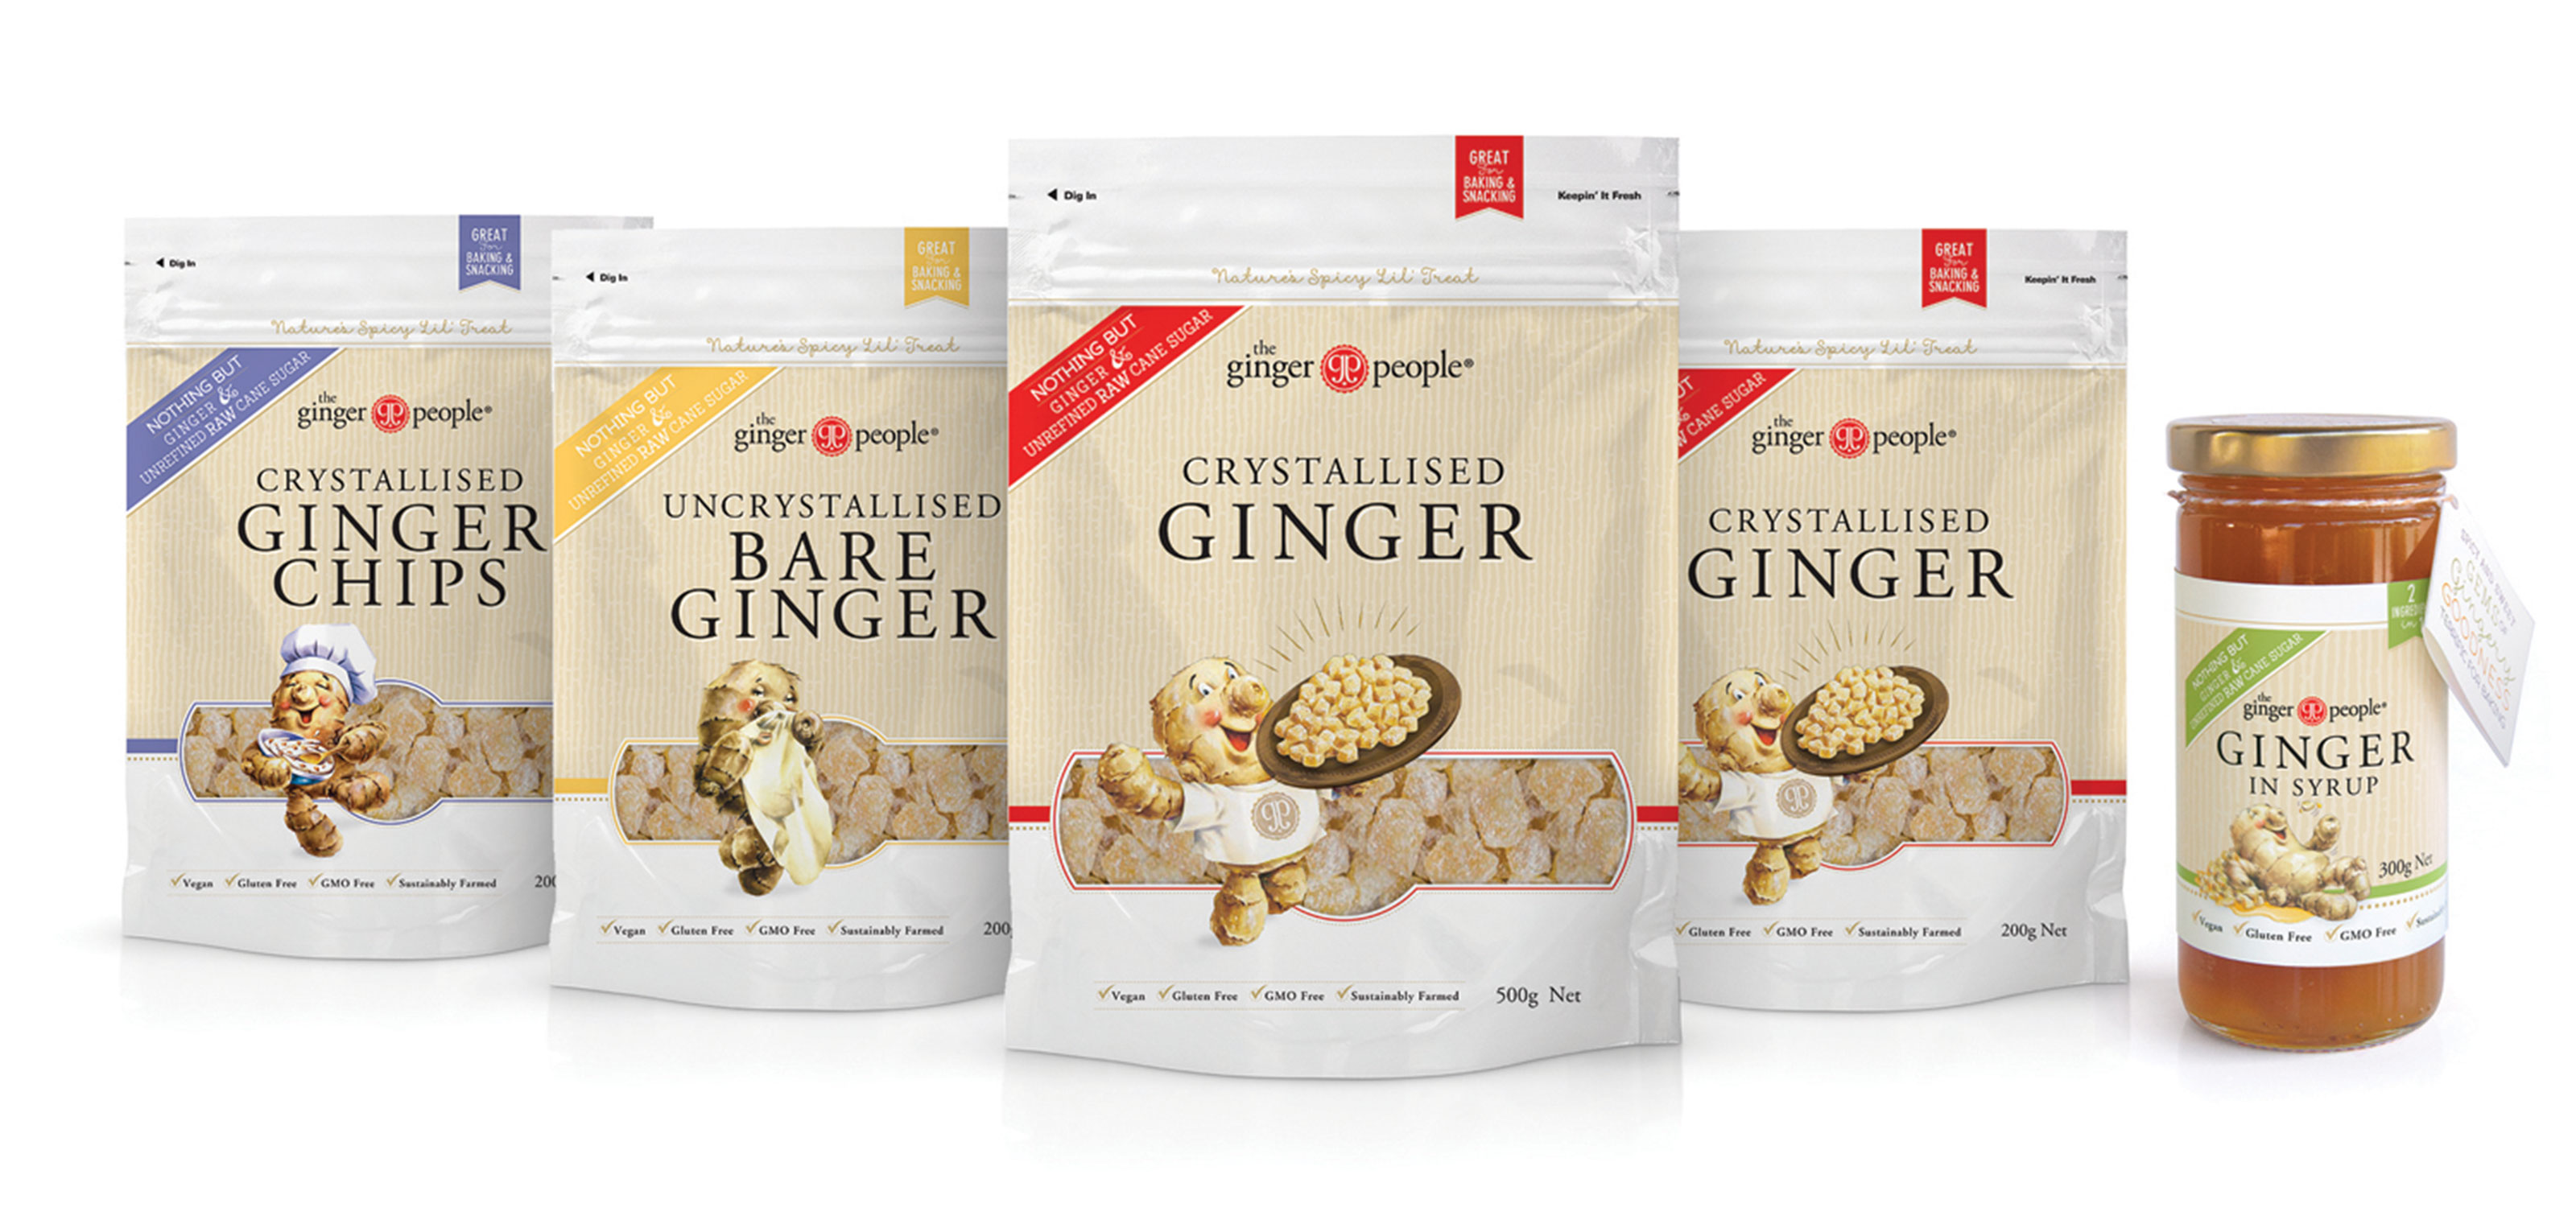 The Ginger People Ginger Packaging